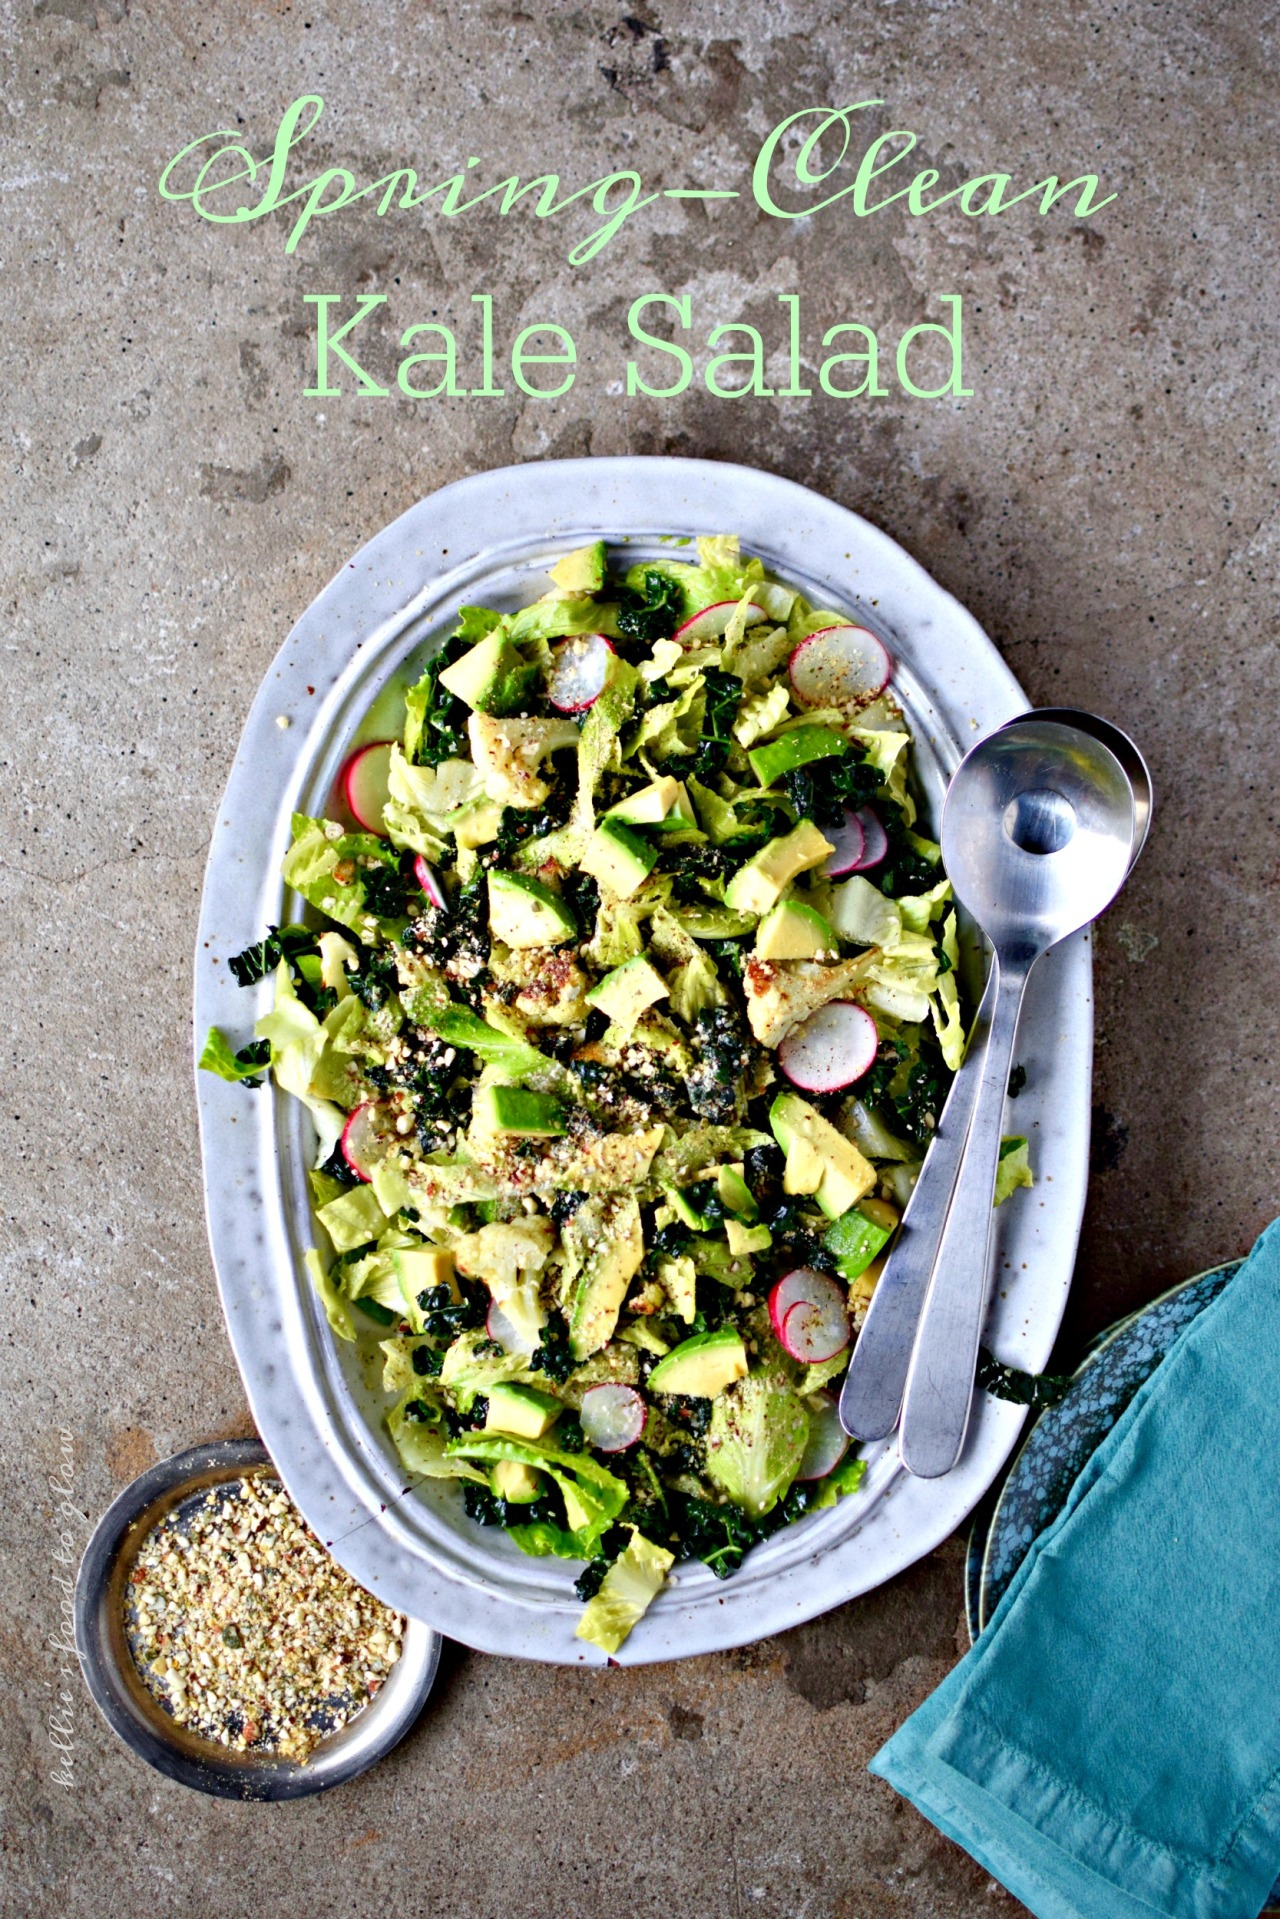 "Not a detox salad but a welcome to spring, summer and salads. Kale can be prepped the day before eating, then topped and dressed with the smoked oil vinaigrette and addictive nutty topping just before serving. This is perfect as a substantial side salad, or topped with your protein of choice for a ""meal salad"". Add new potatoes or asparagus in spring, and pan-roasted sweetcorn in the height of summer."